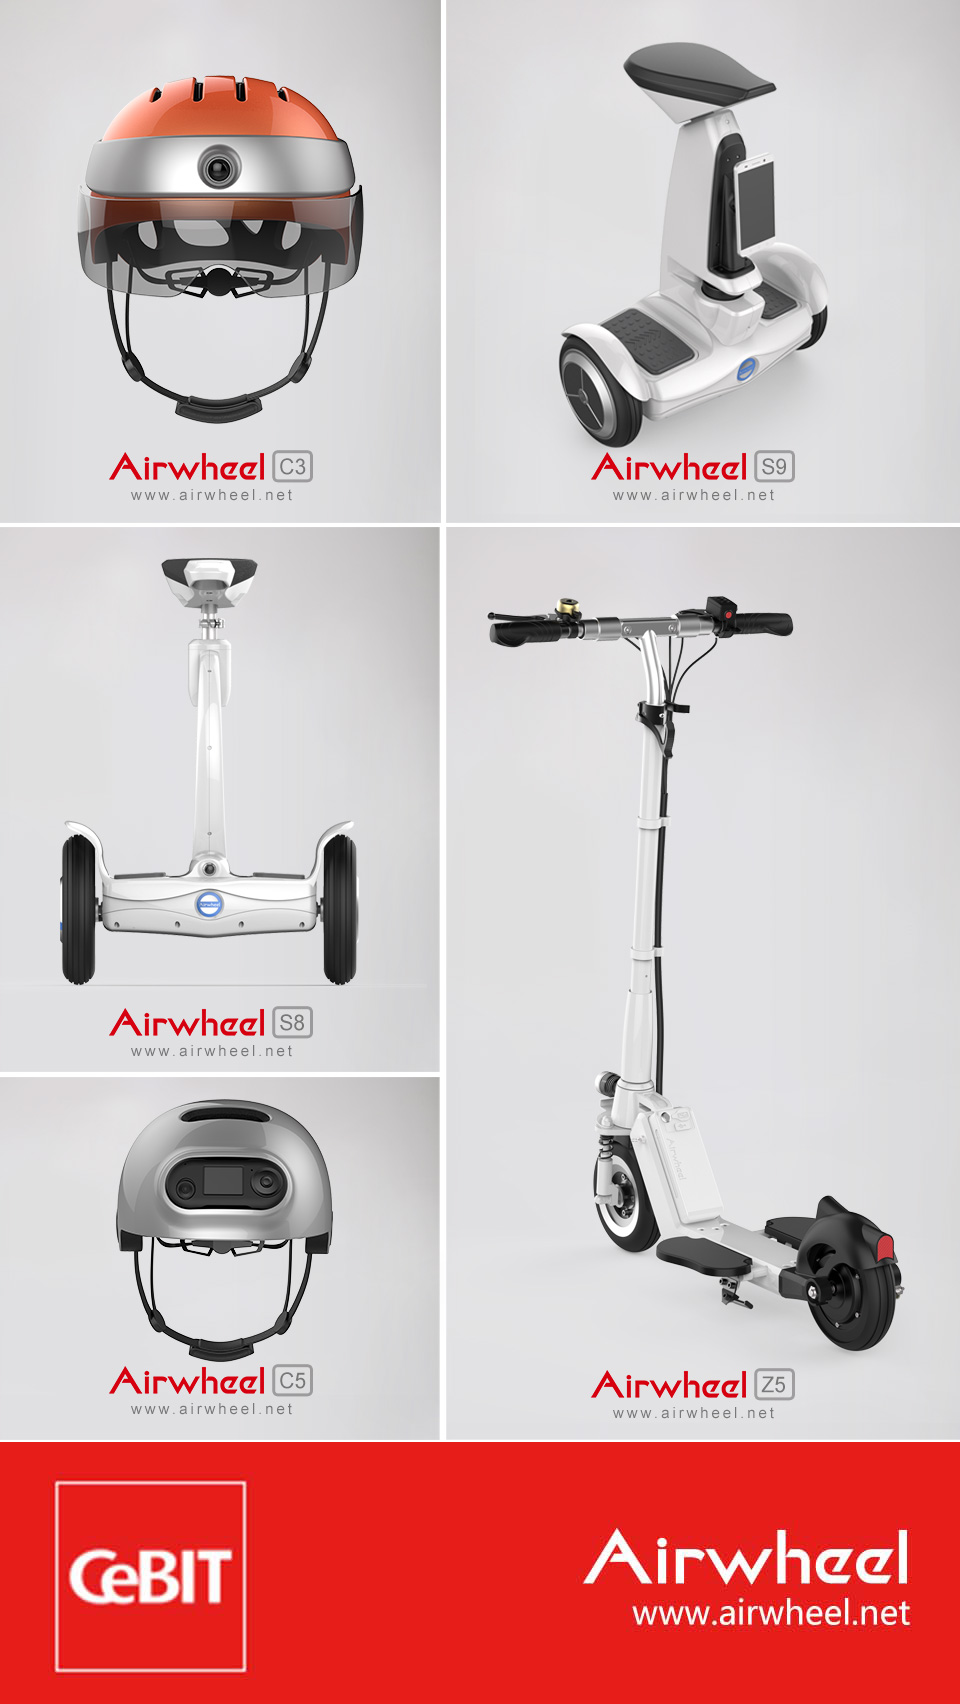 Airwheel intelligent robot